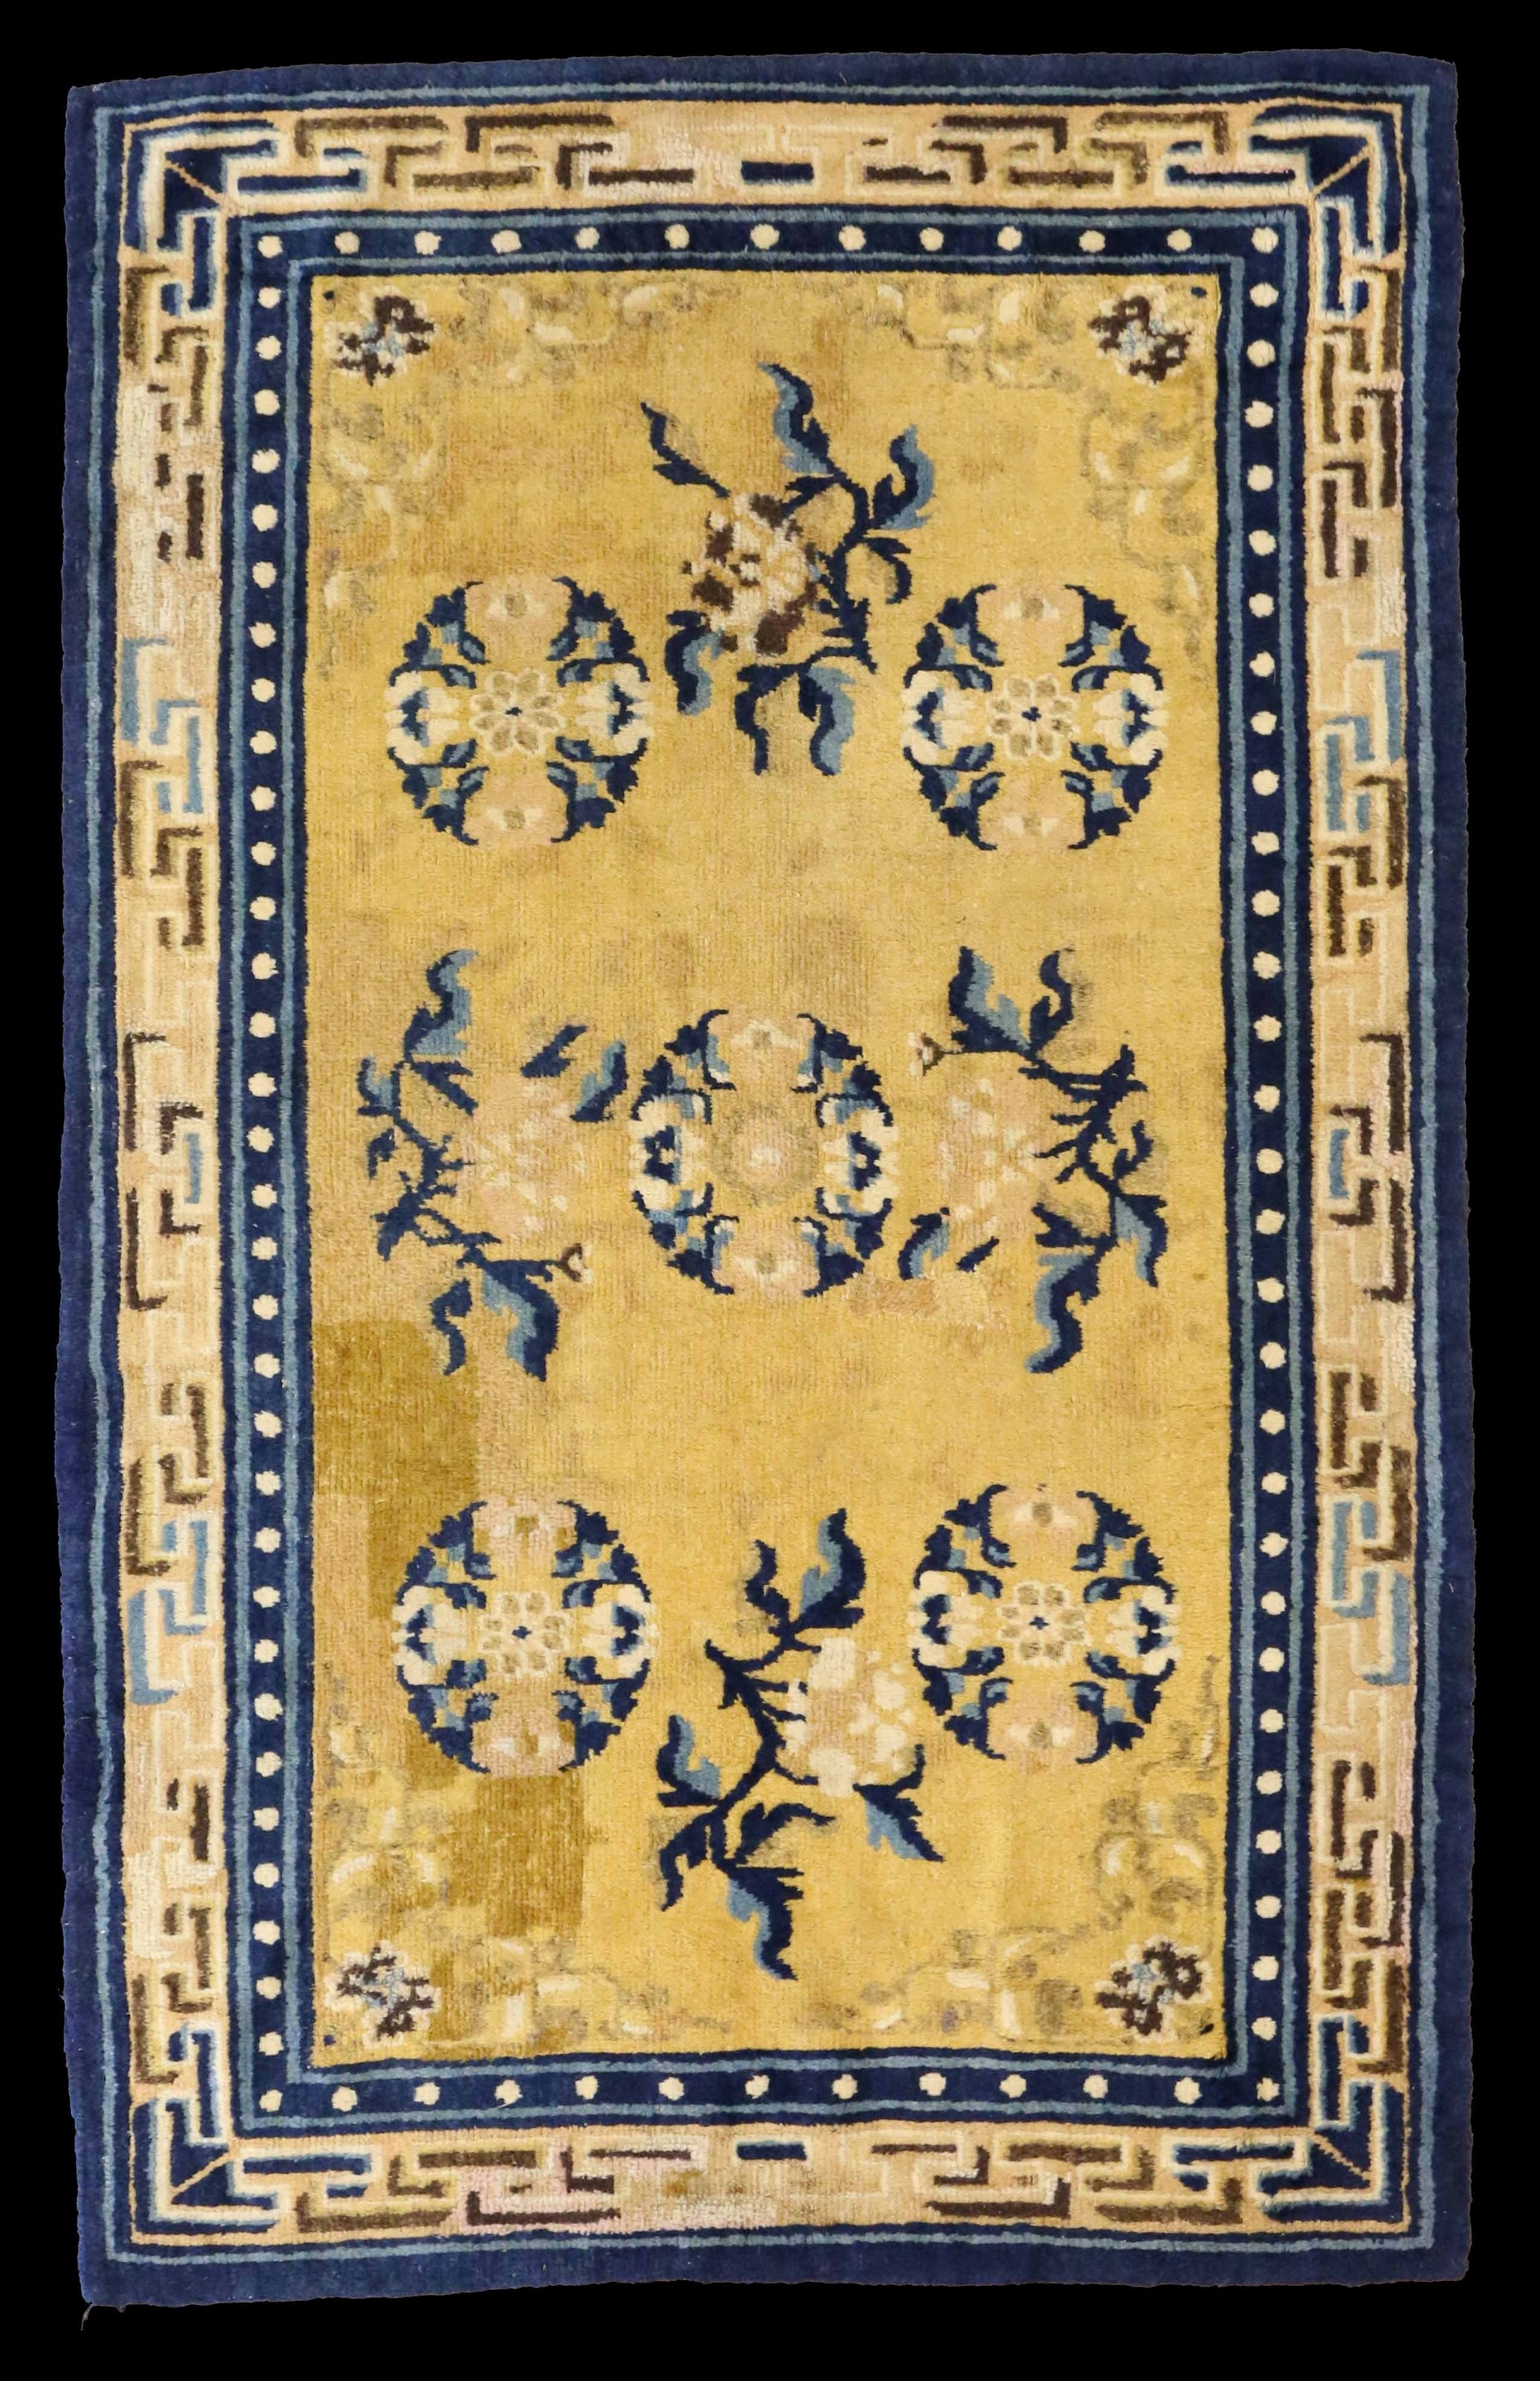 Antique Chinese Rugs The Uks Premier Antiques Portal Online Throughout Chinese Rugs (Image 7 of 15)